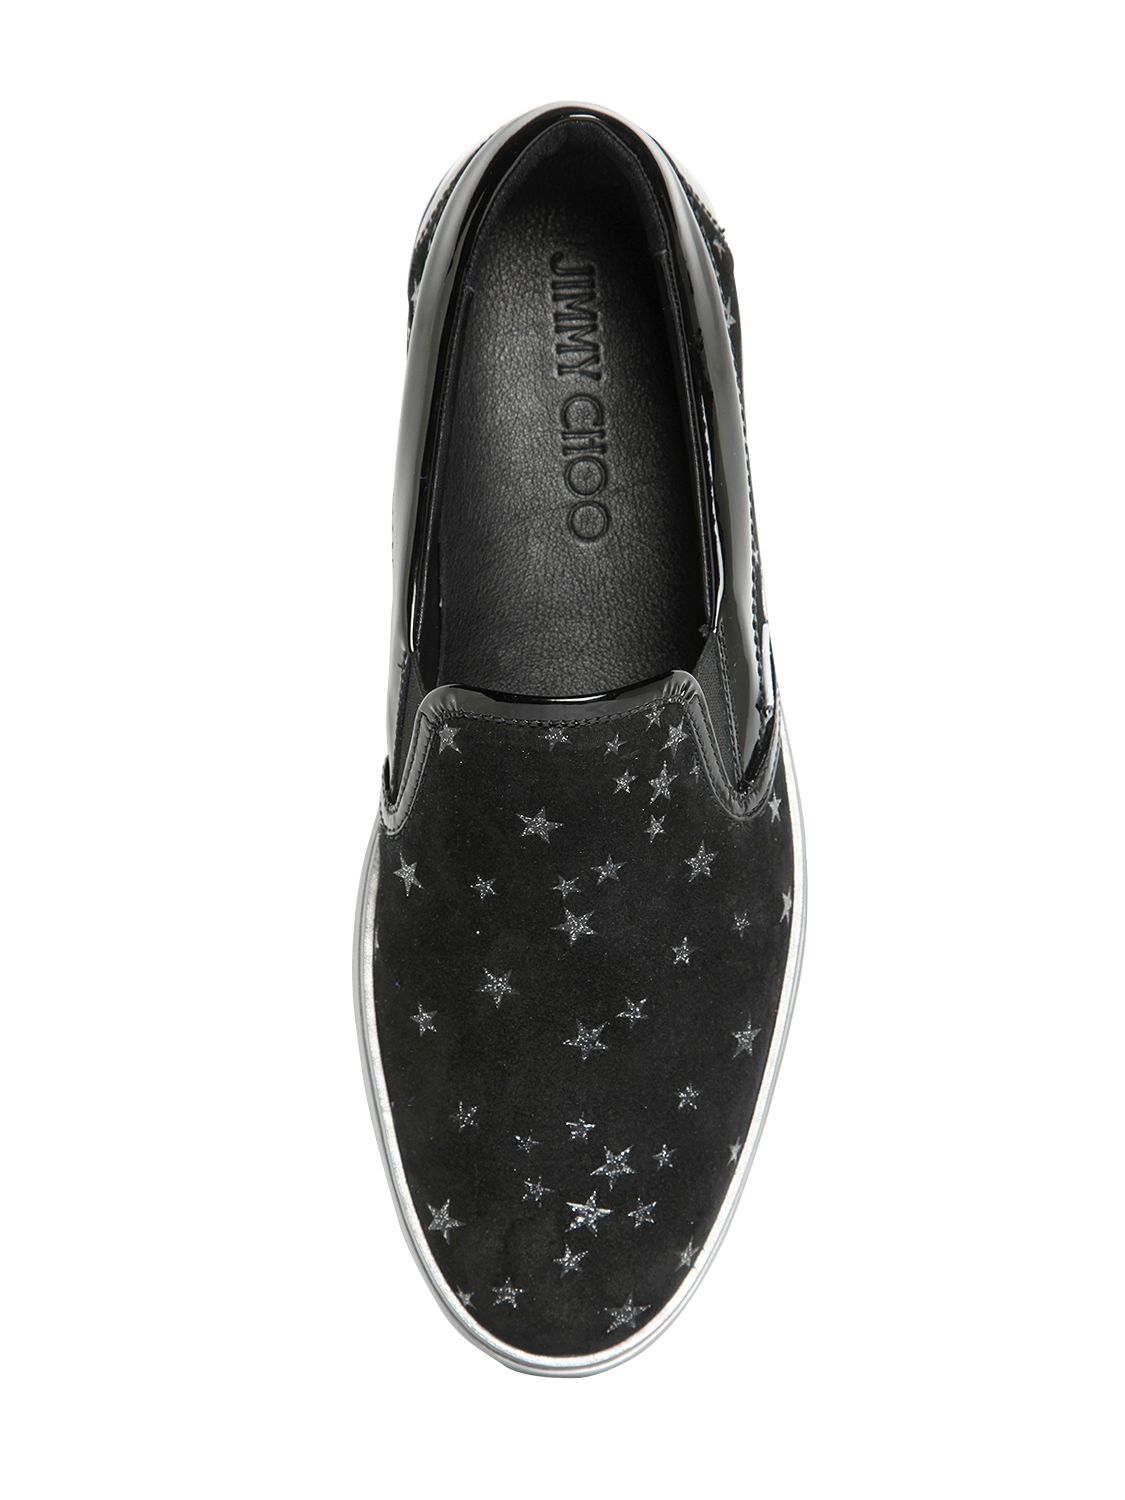 869e2b0d6884 ... buy lyst jimmy choo star printed suede slip on sneakers in black for men  abe83 170c5